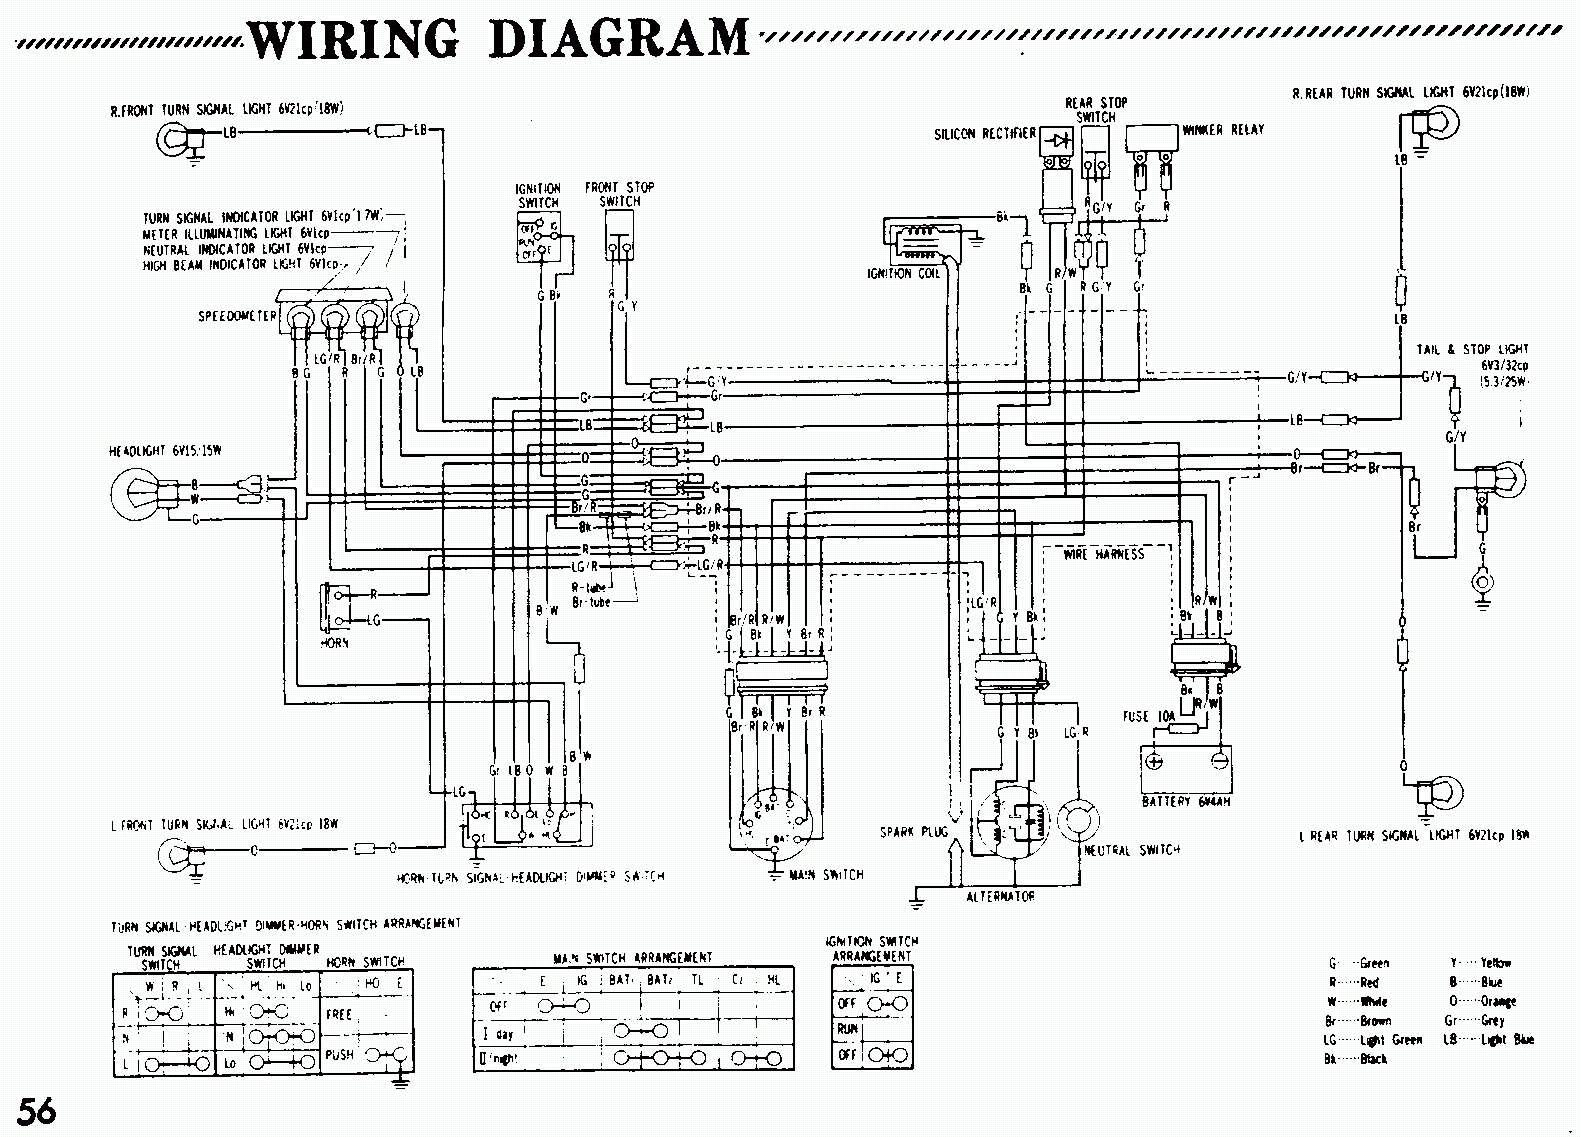 honda ct70 1976 wiring diagram honda z50 k3 wiring diagram honda wiring diagrams instruction honda c70 wiring diagram at gsmx.co